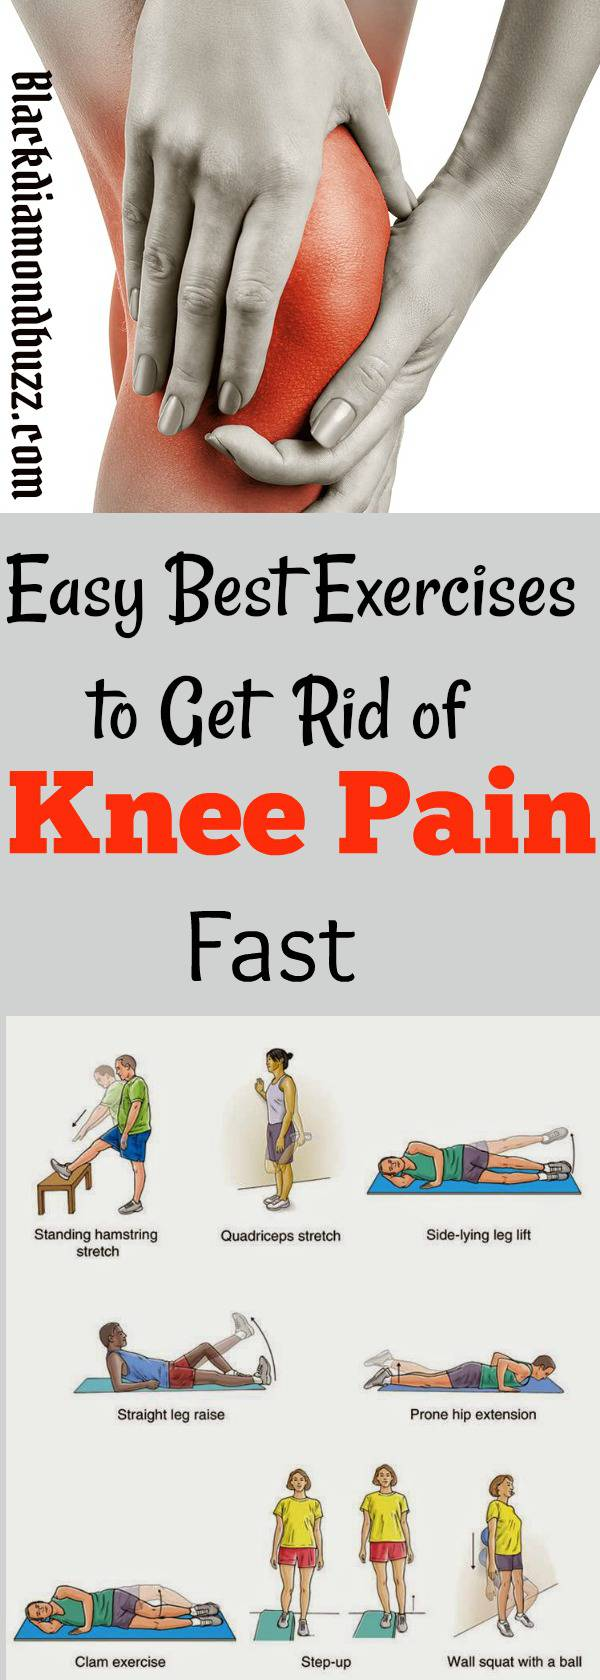 7 Best Exercises for Knee Pain,Swelling and Stiffness Relief - Proven To Strengthen Knees